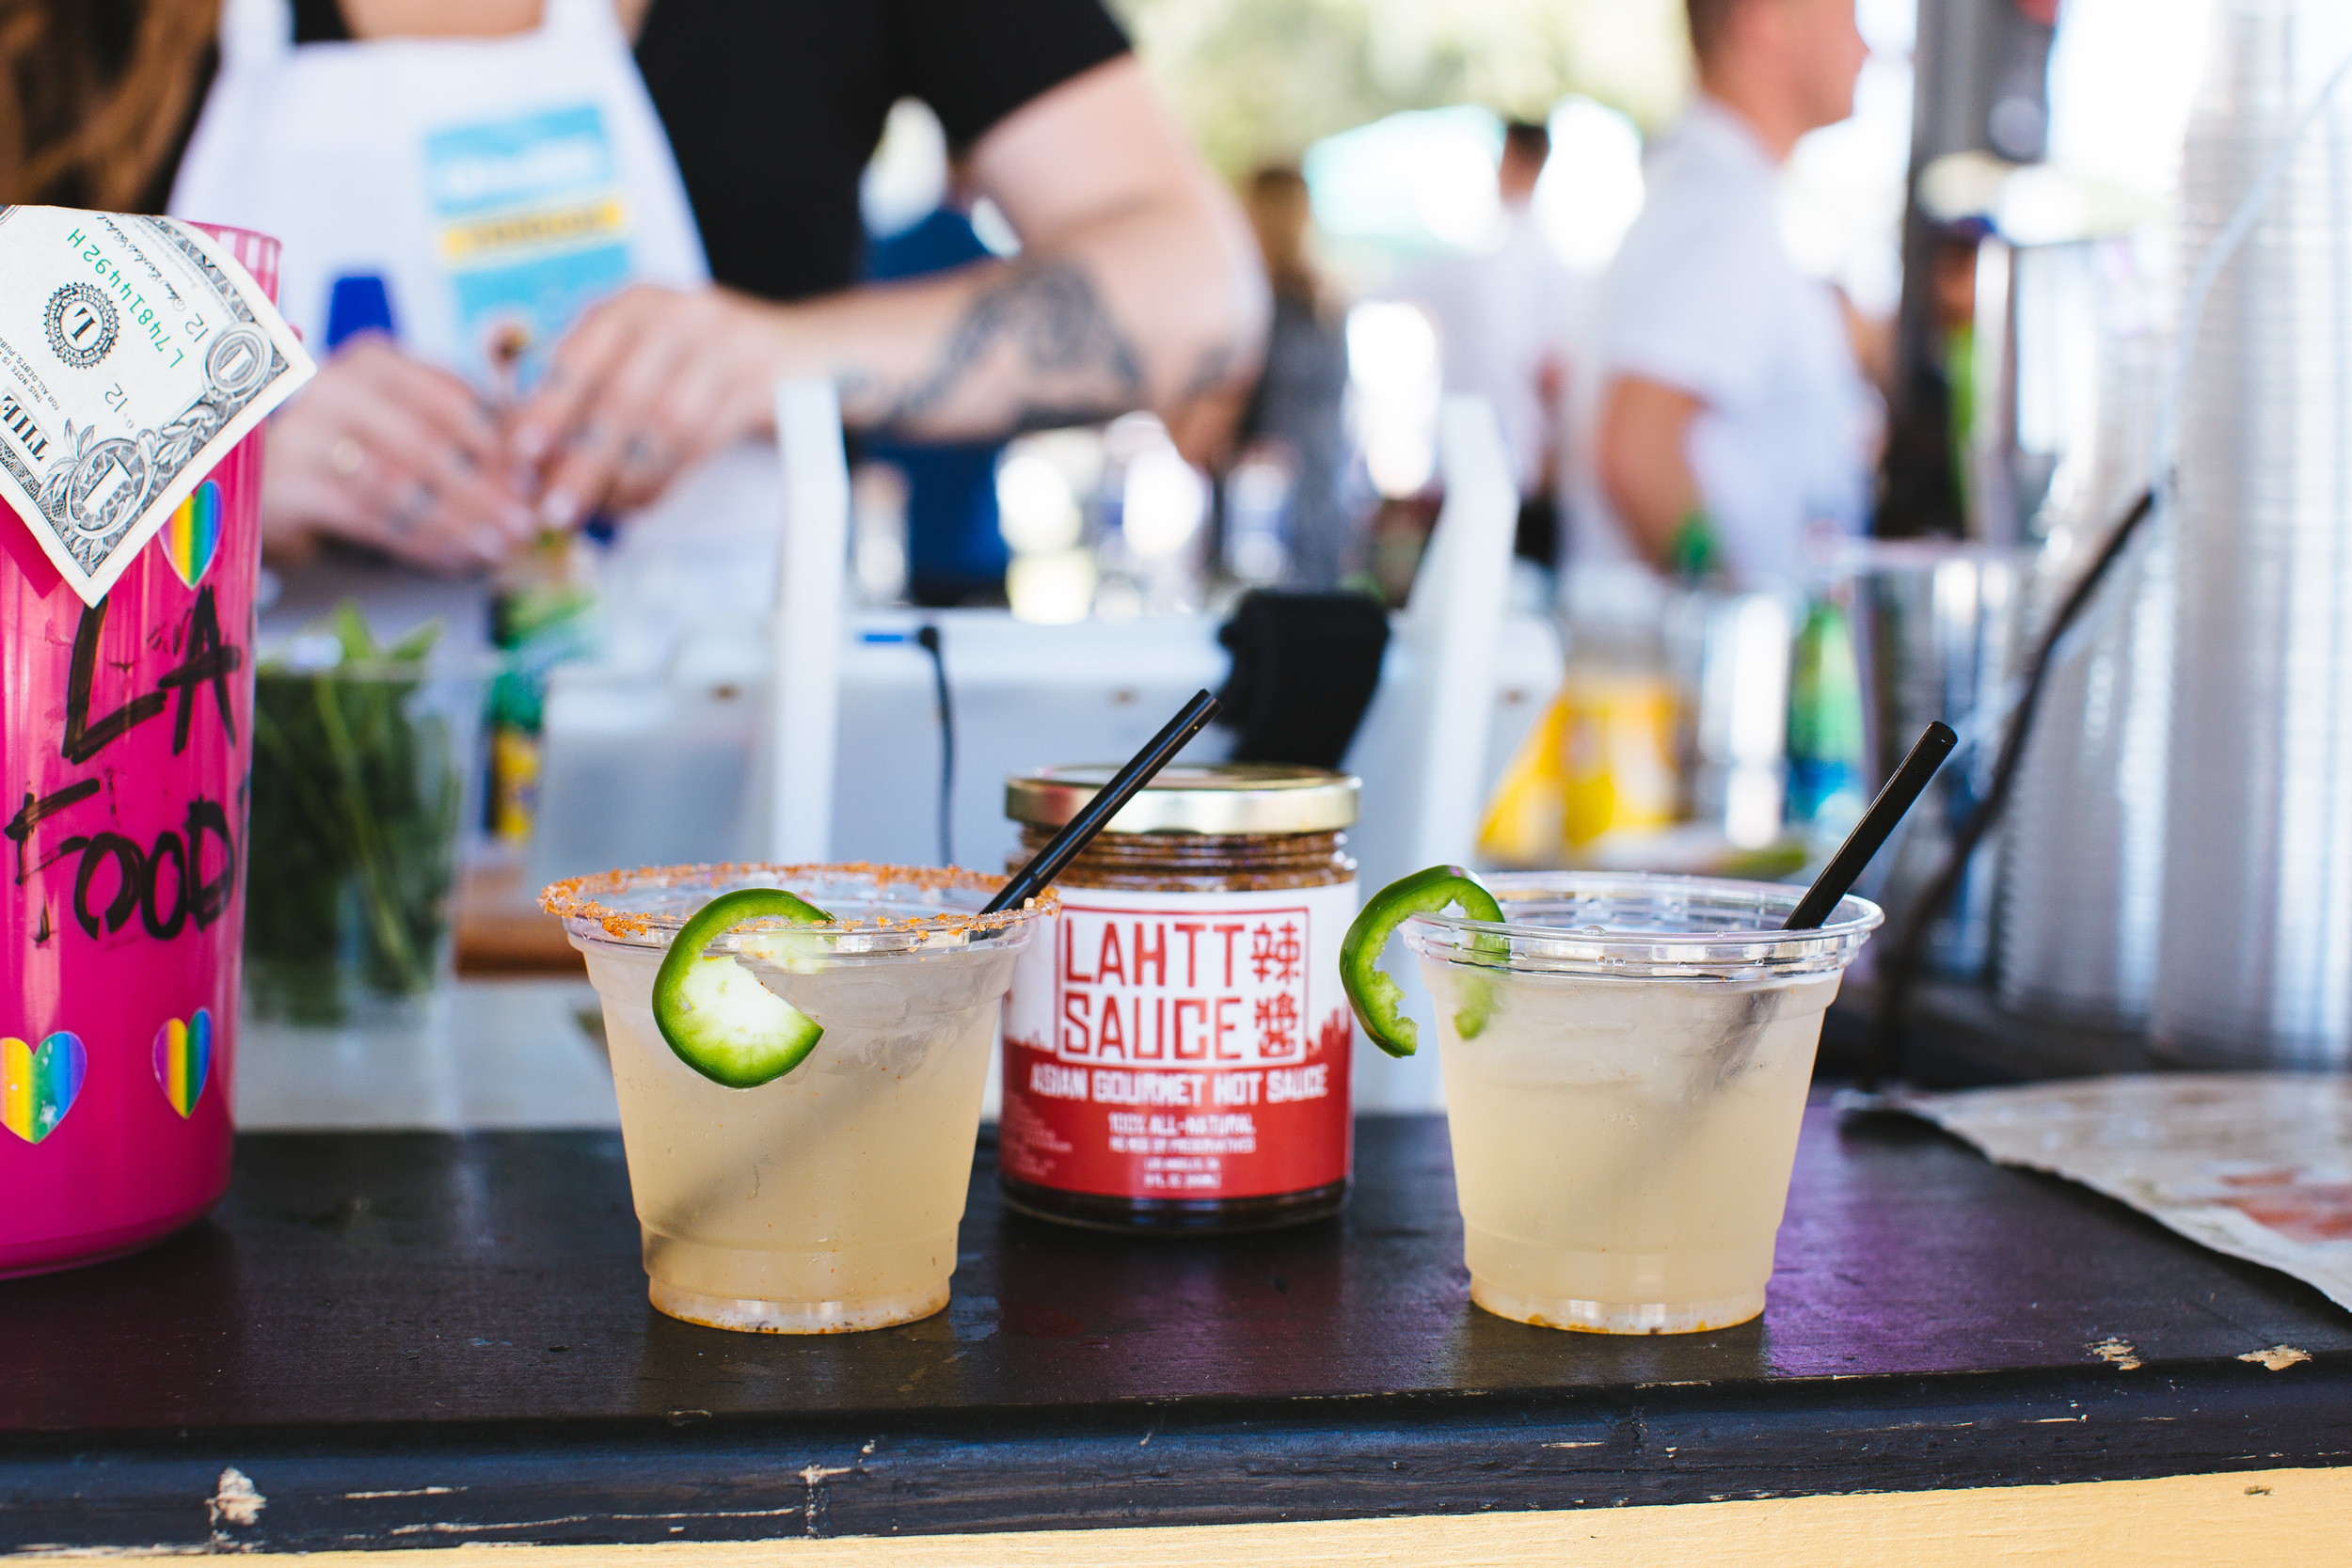 When LA Food Fest ran out of jalepenos, they asked us if they could use Lahtt Sauce for their margaritas...we honestly had no clue how it would taste...  Turns out... it tasted AMAZING!! The smokiness and depth of flavors in the sauce complimented the drinks perfectly! Even though they restocked on jalepenos, there was just no comparison. Once this masterpiece was created, the Lahtt Sauce Margarita was the crowd favorite.